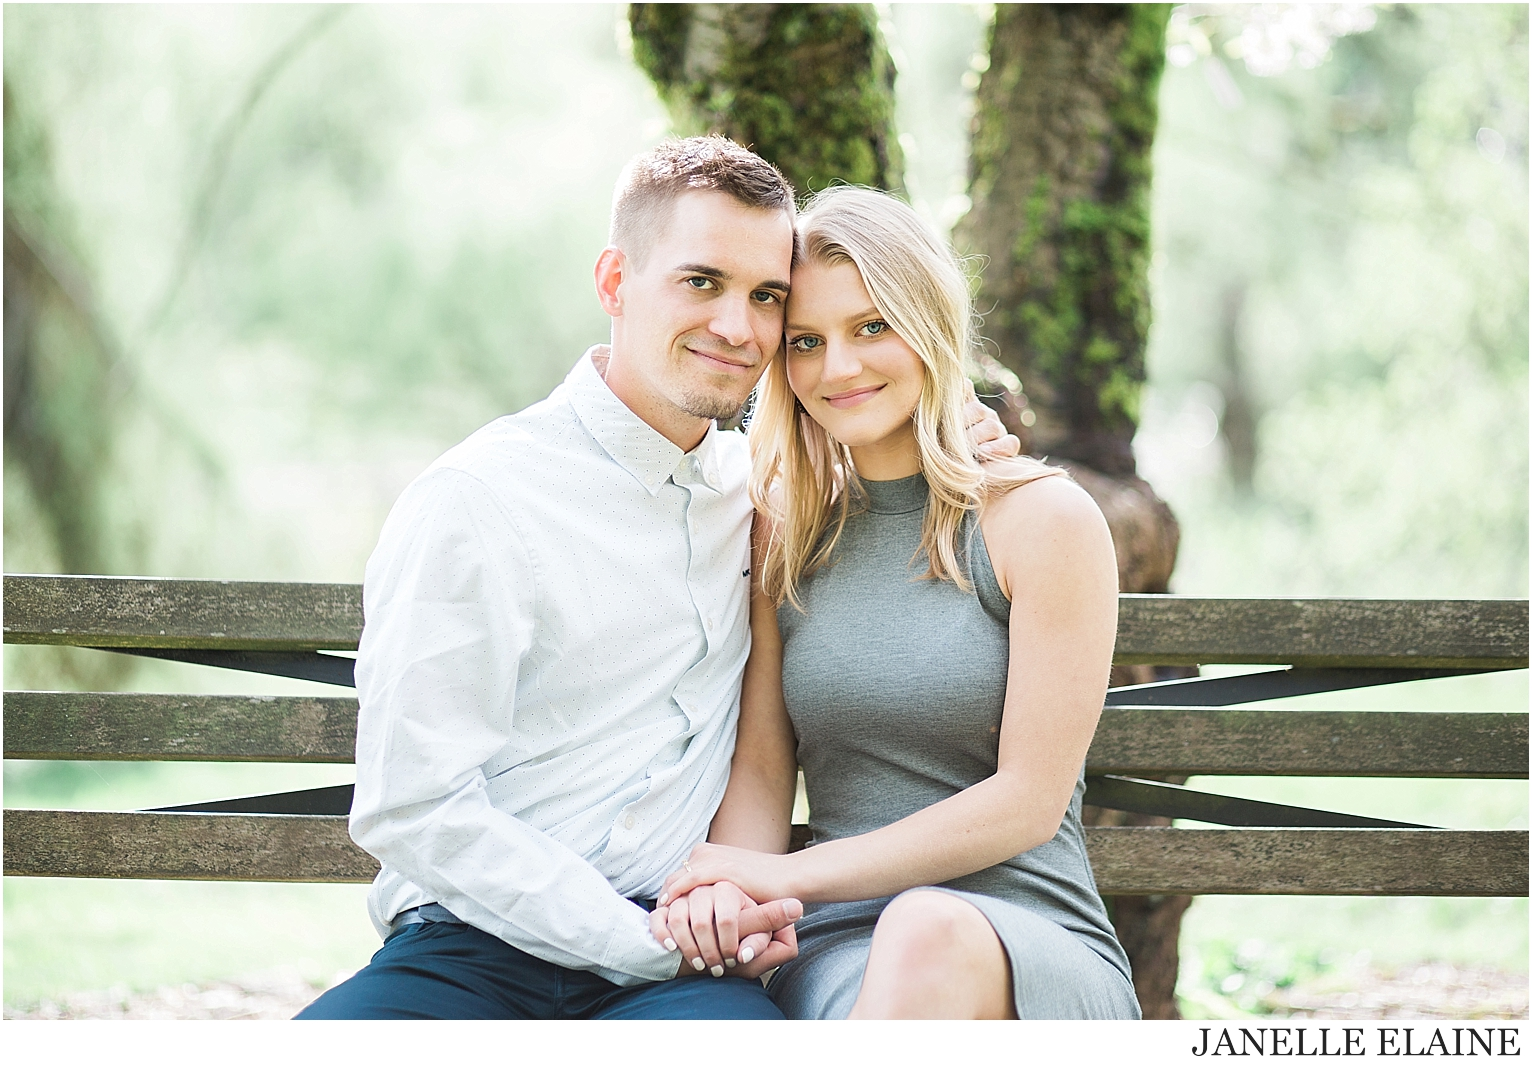 tricia and nate engagement photos-janelle elaine photography-61.jpg